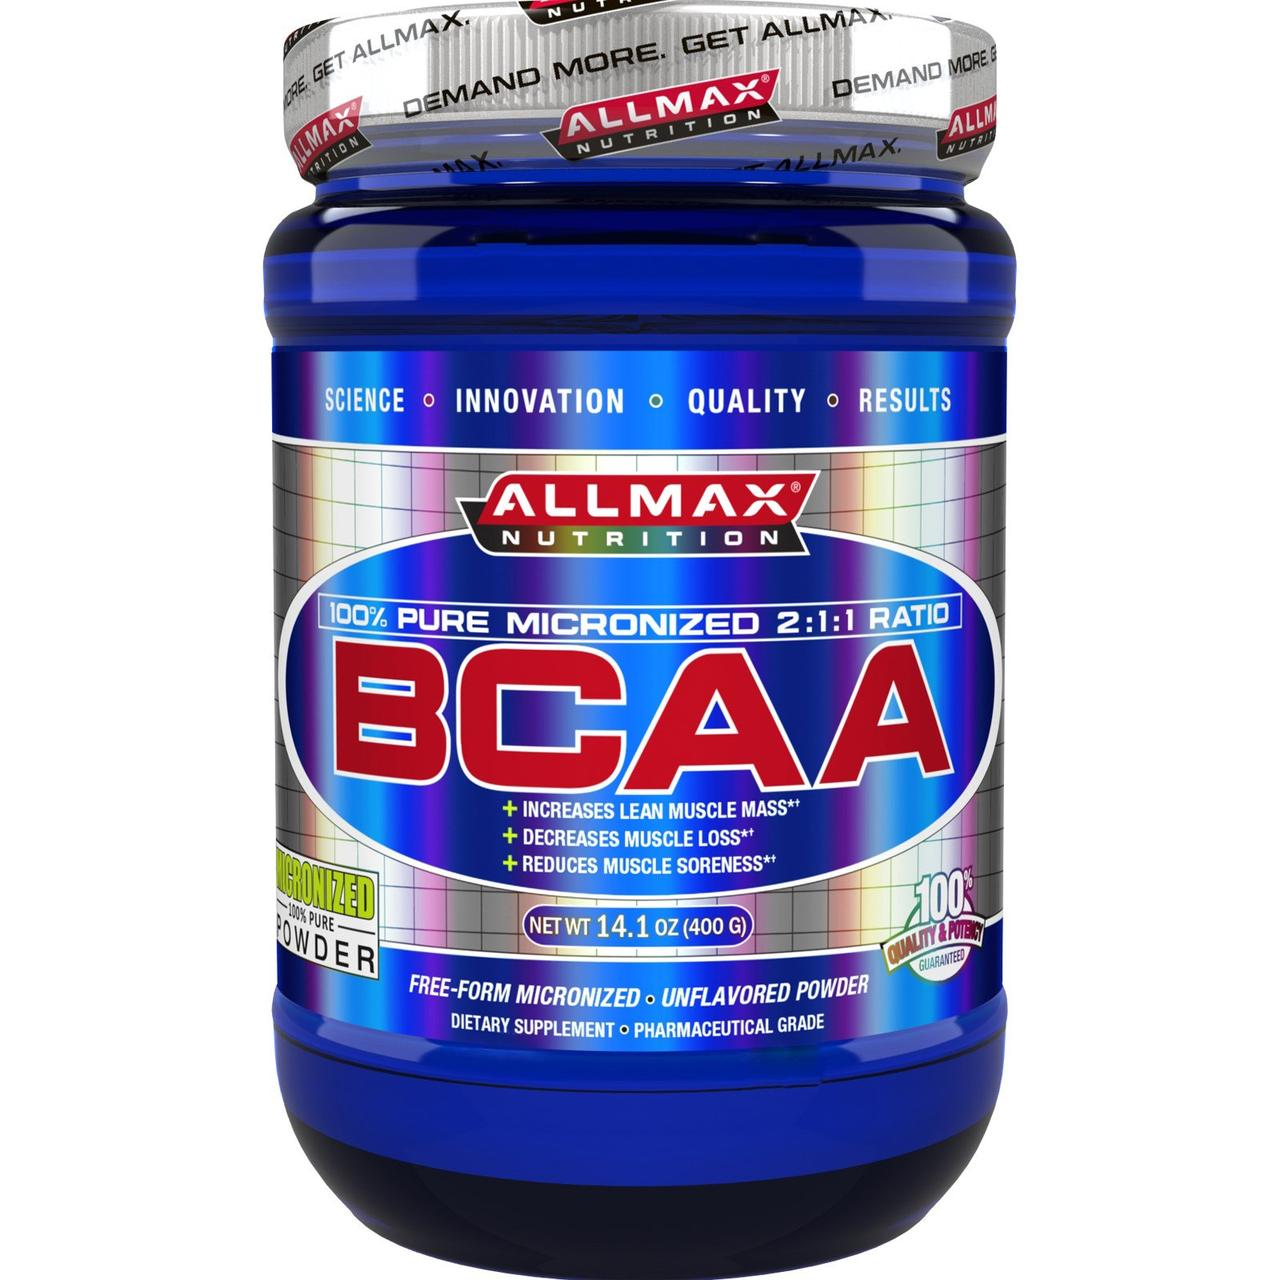 All Max Nutrition BCAA 400 g unflavoured, Олл Макс БЦАА 400 г